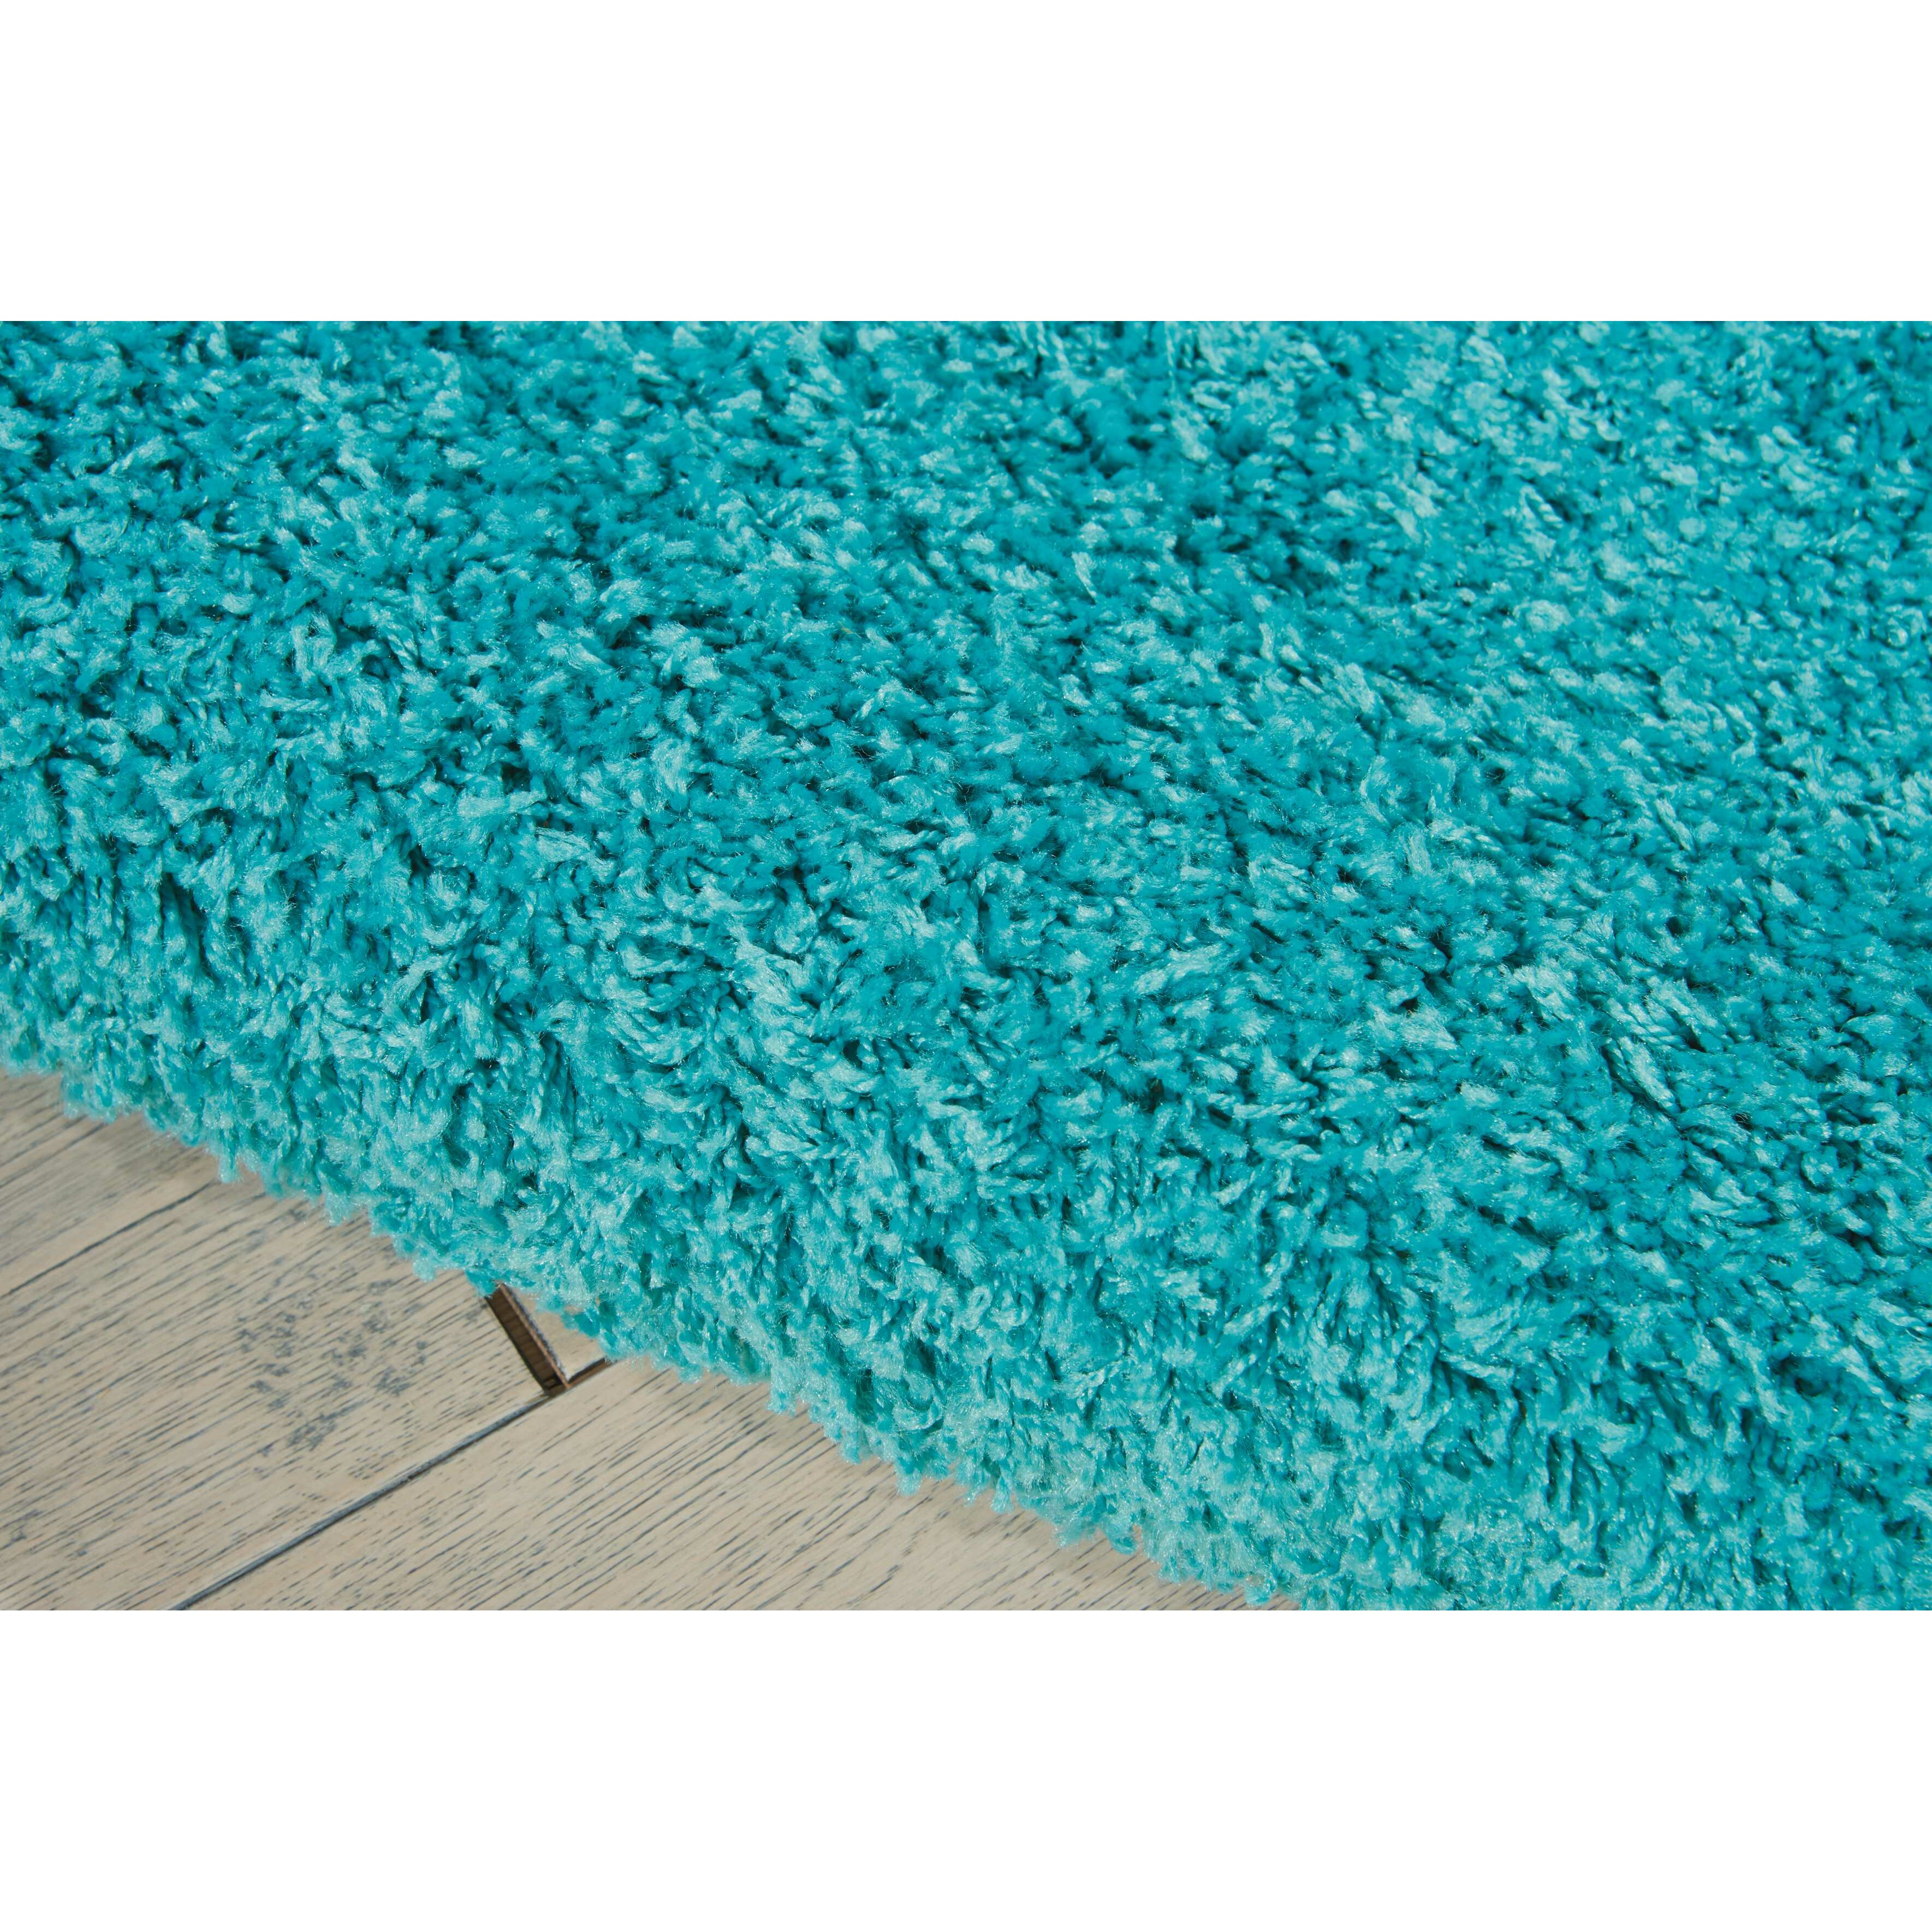 Zipcodetm design alexis turquoise area rug reviews for Turquoise area rug